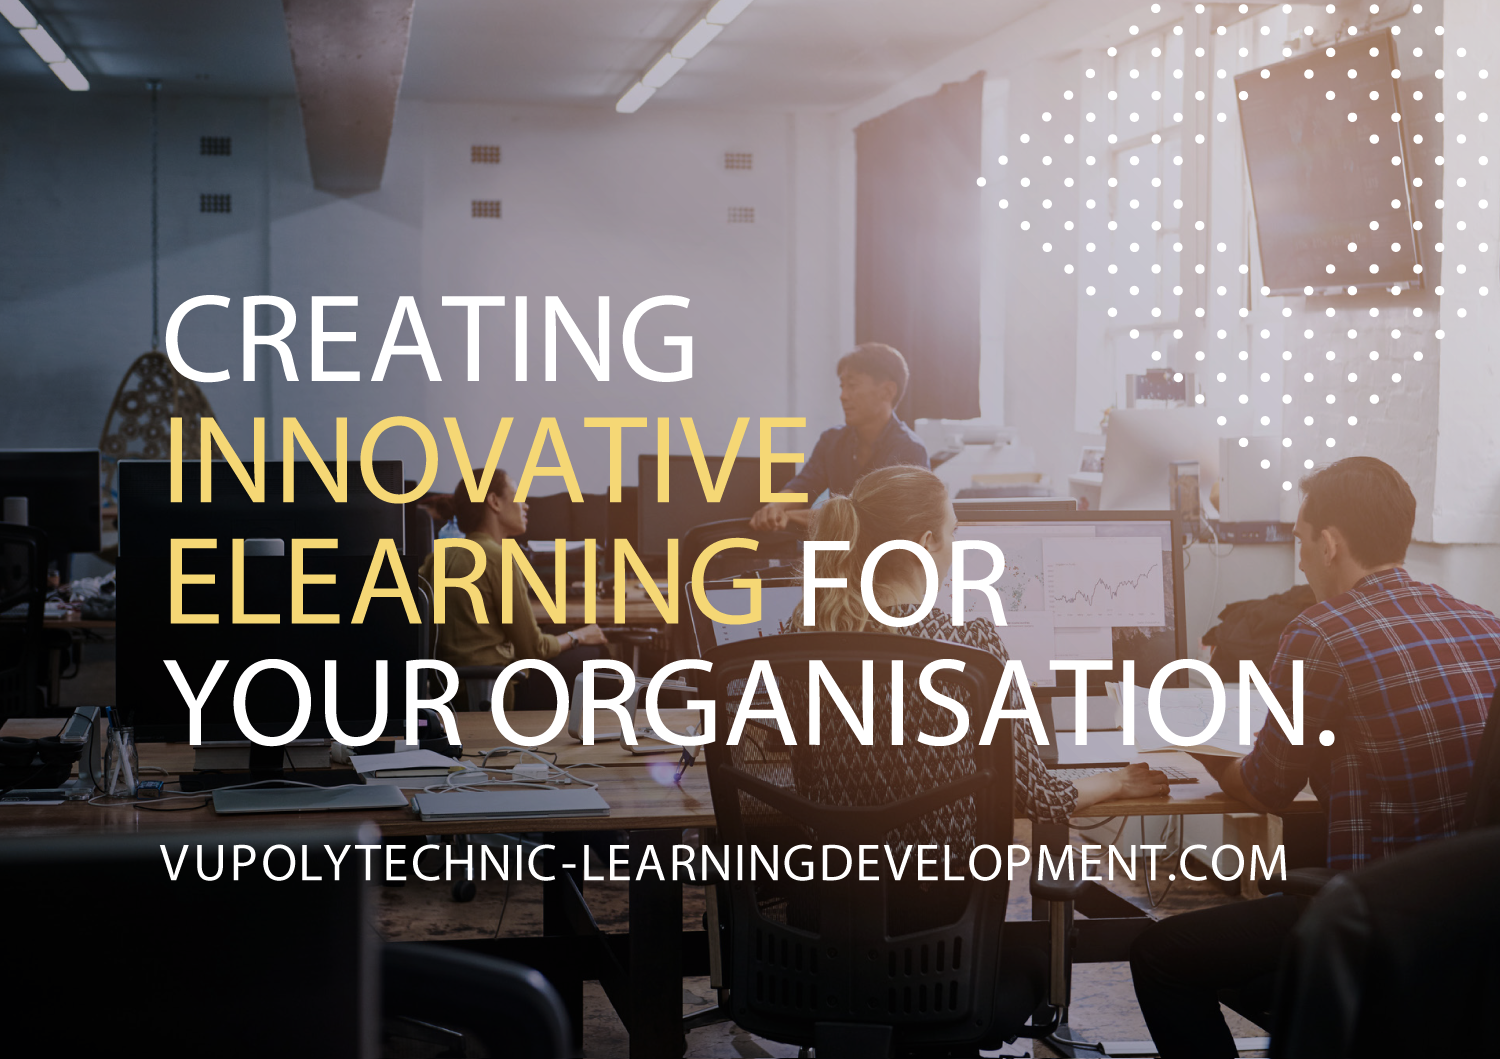 VUP_Learning-Development-Flyer.png